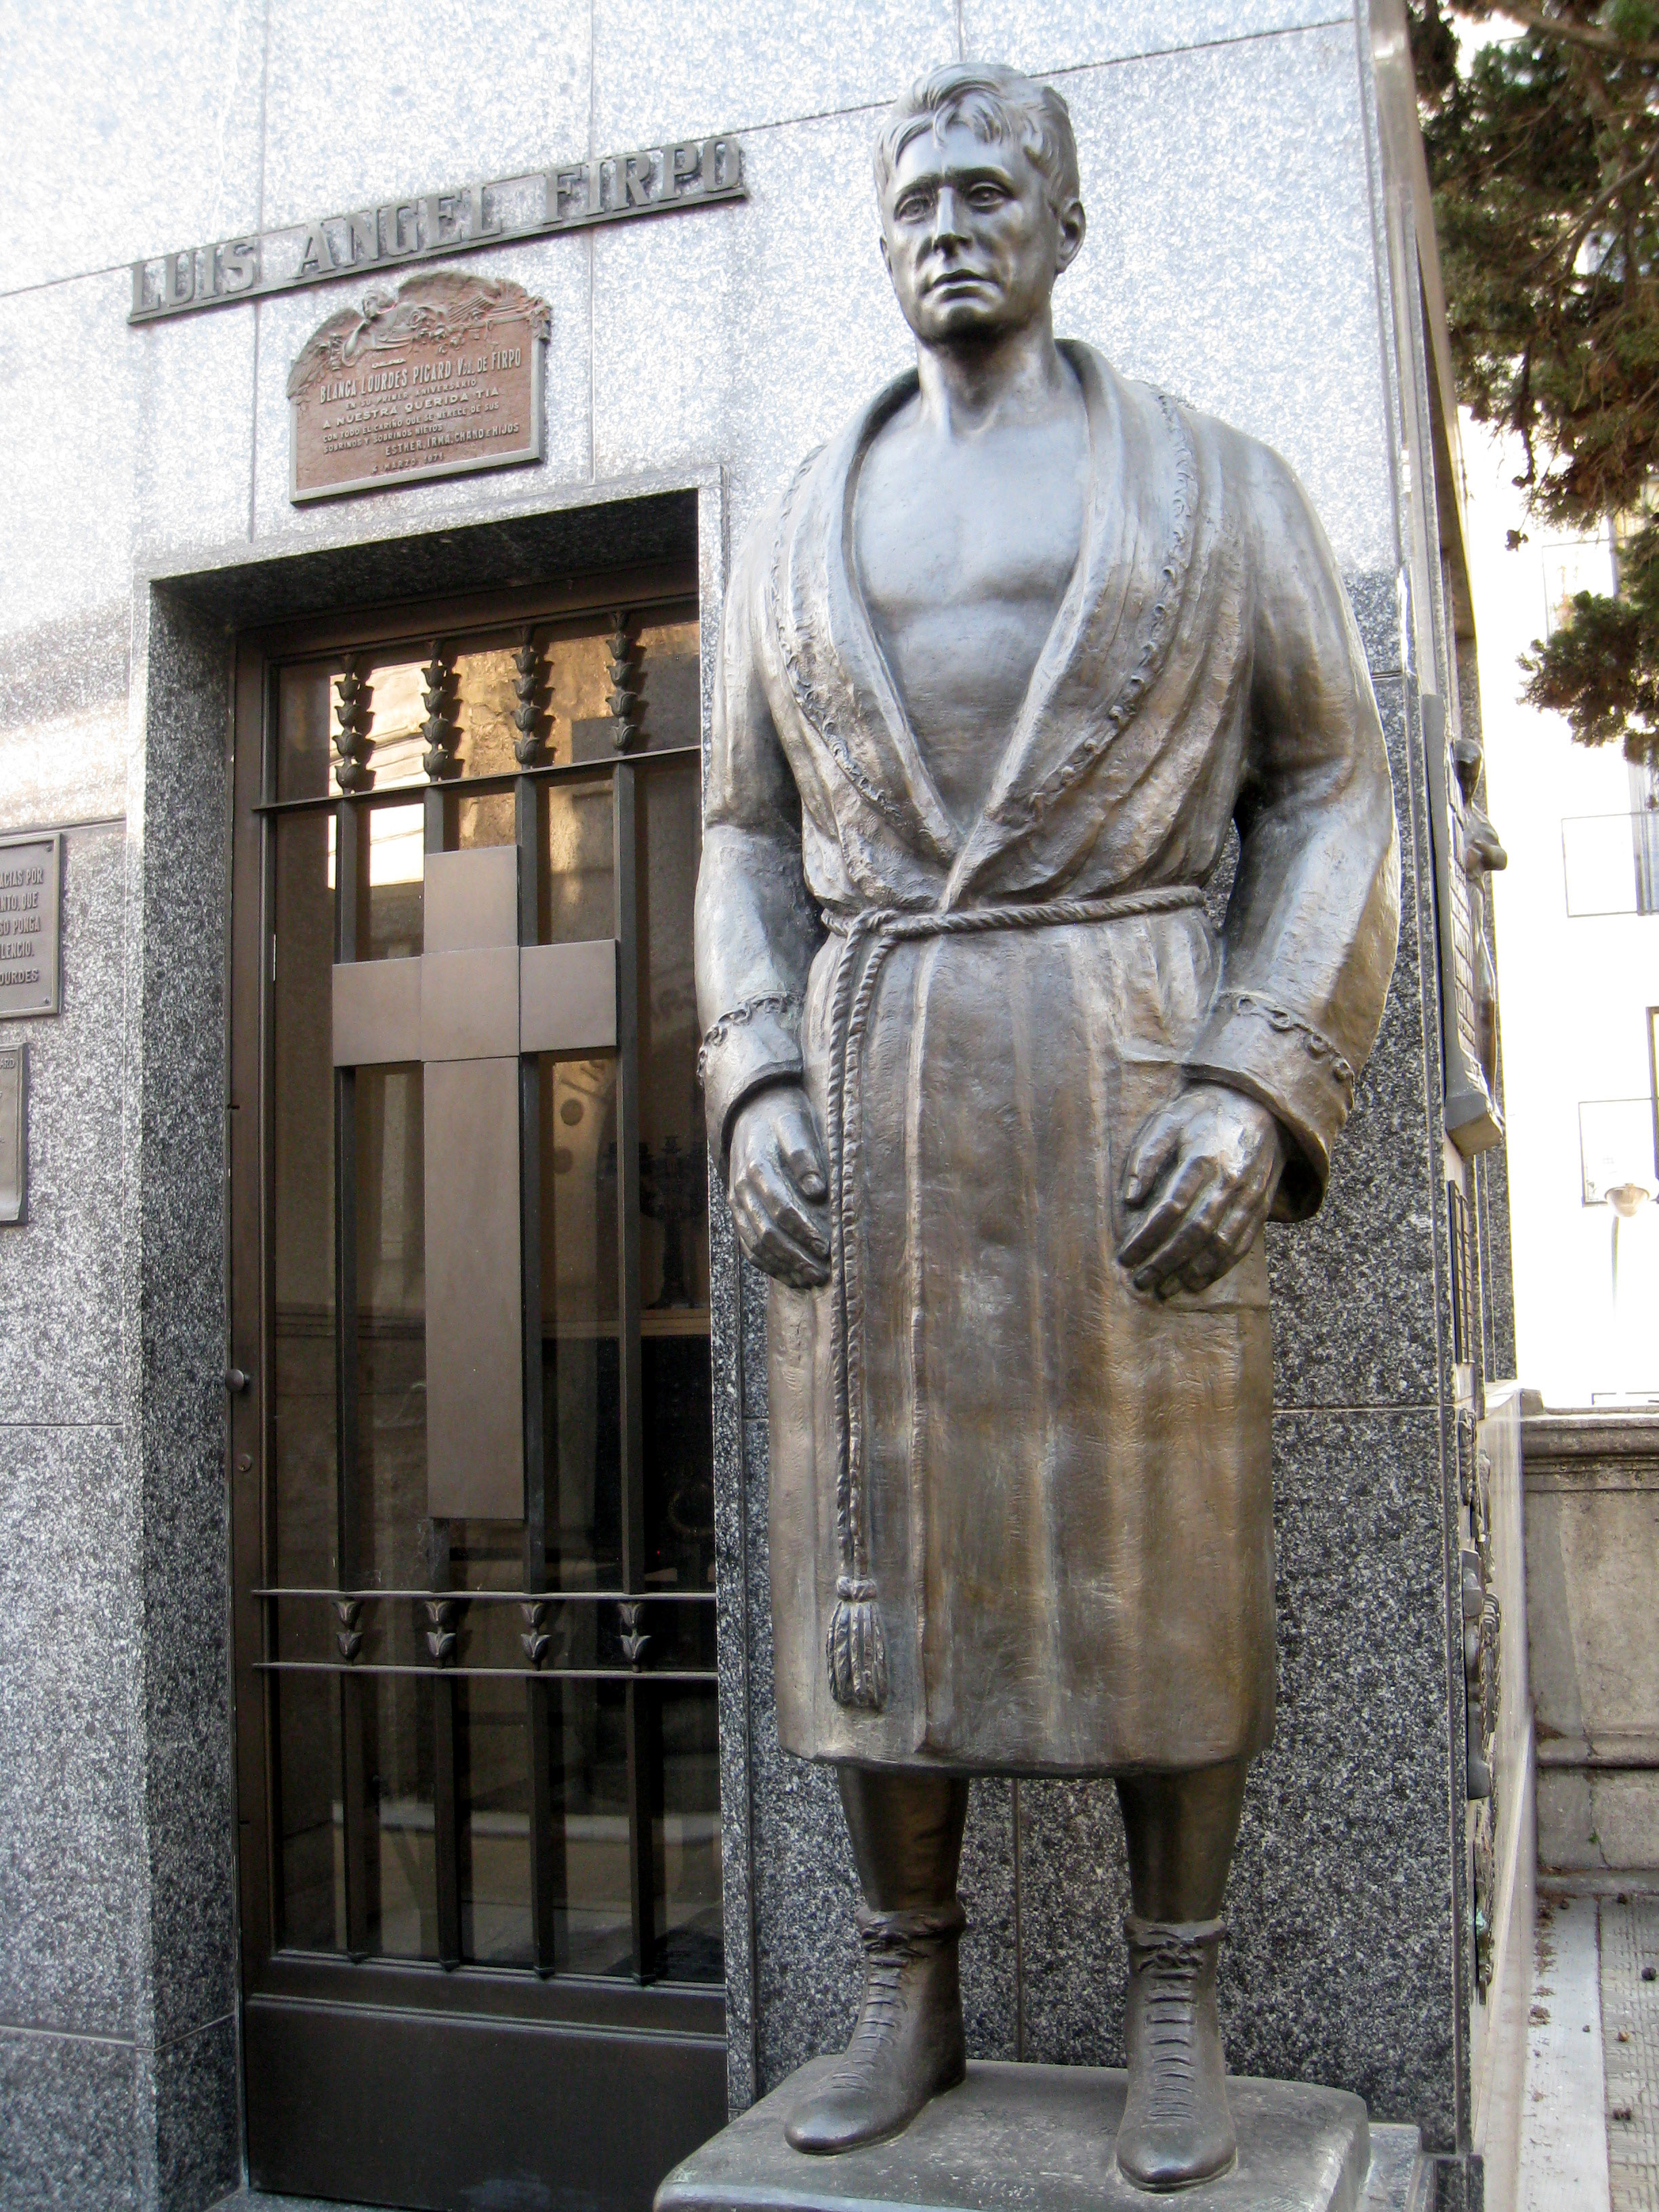 File:Luis angel firpo at recoleta.jpg - Wikimedia Commons